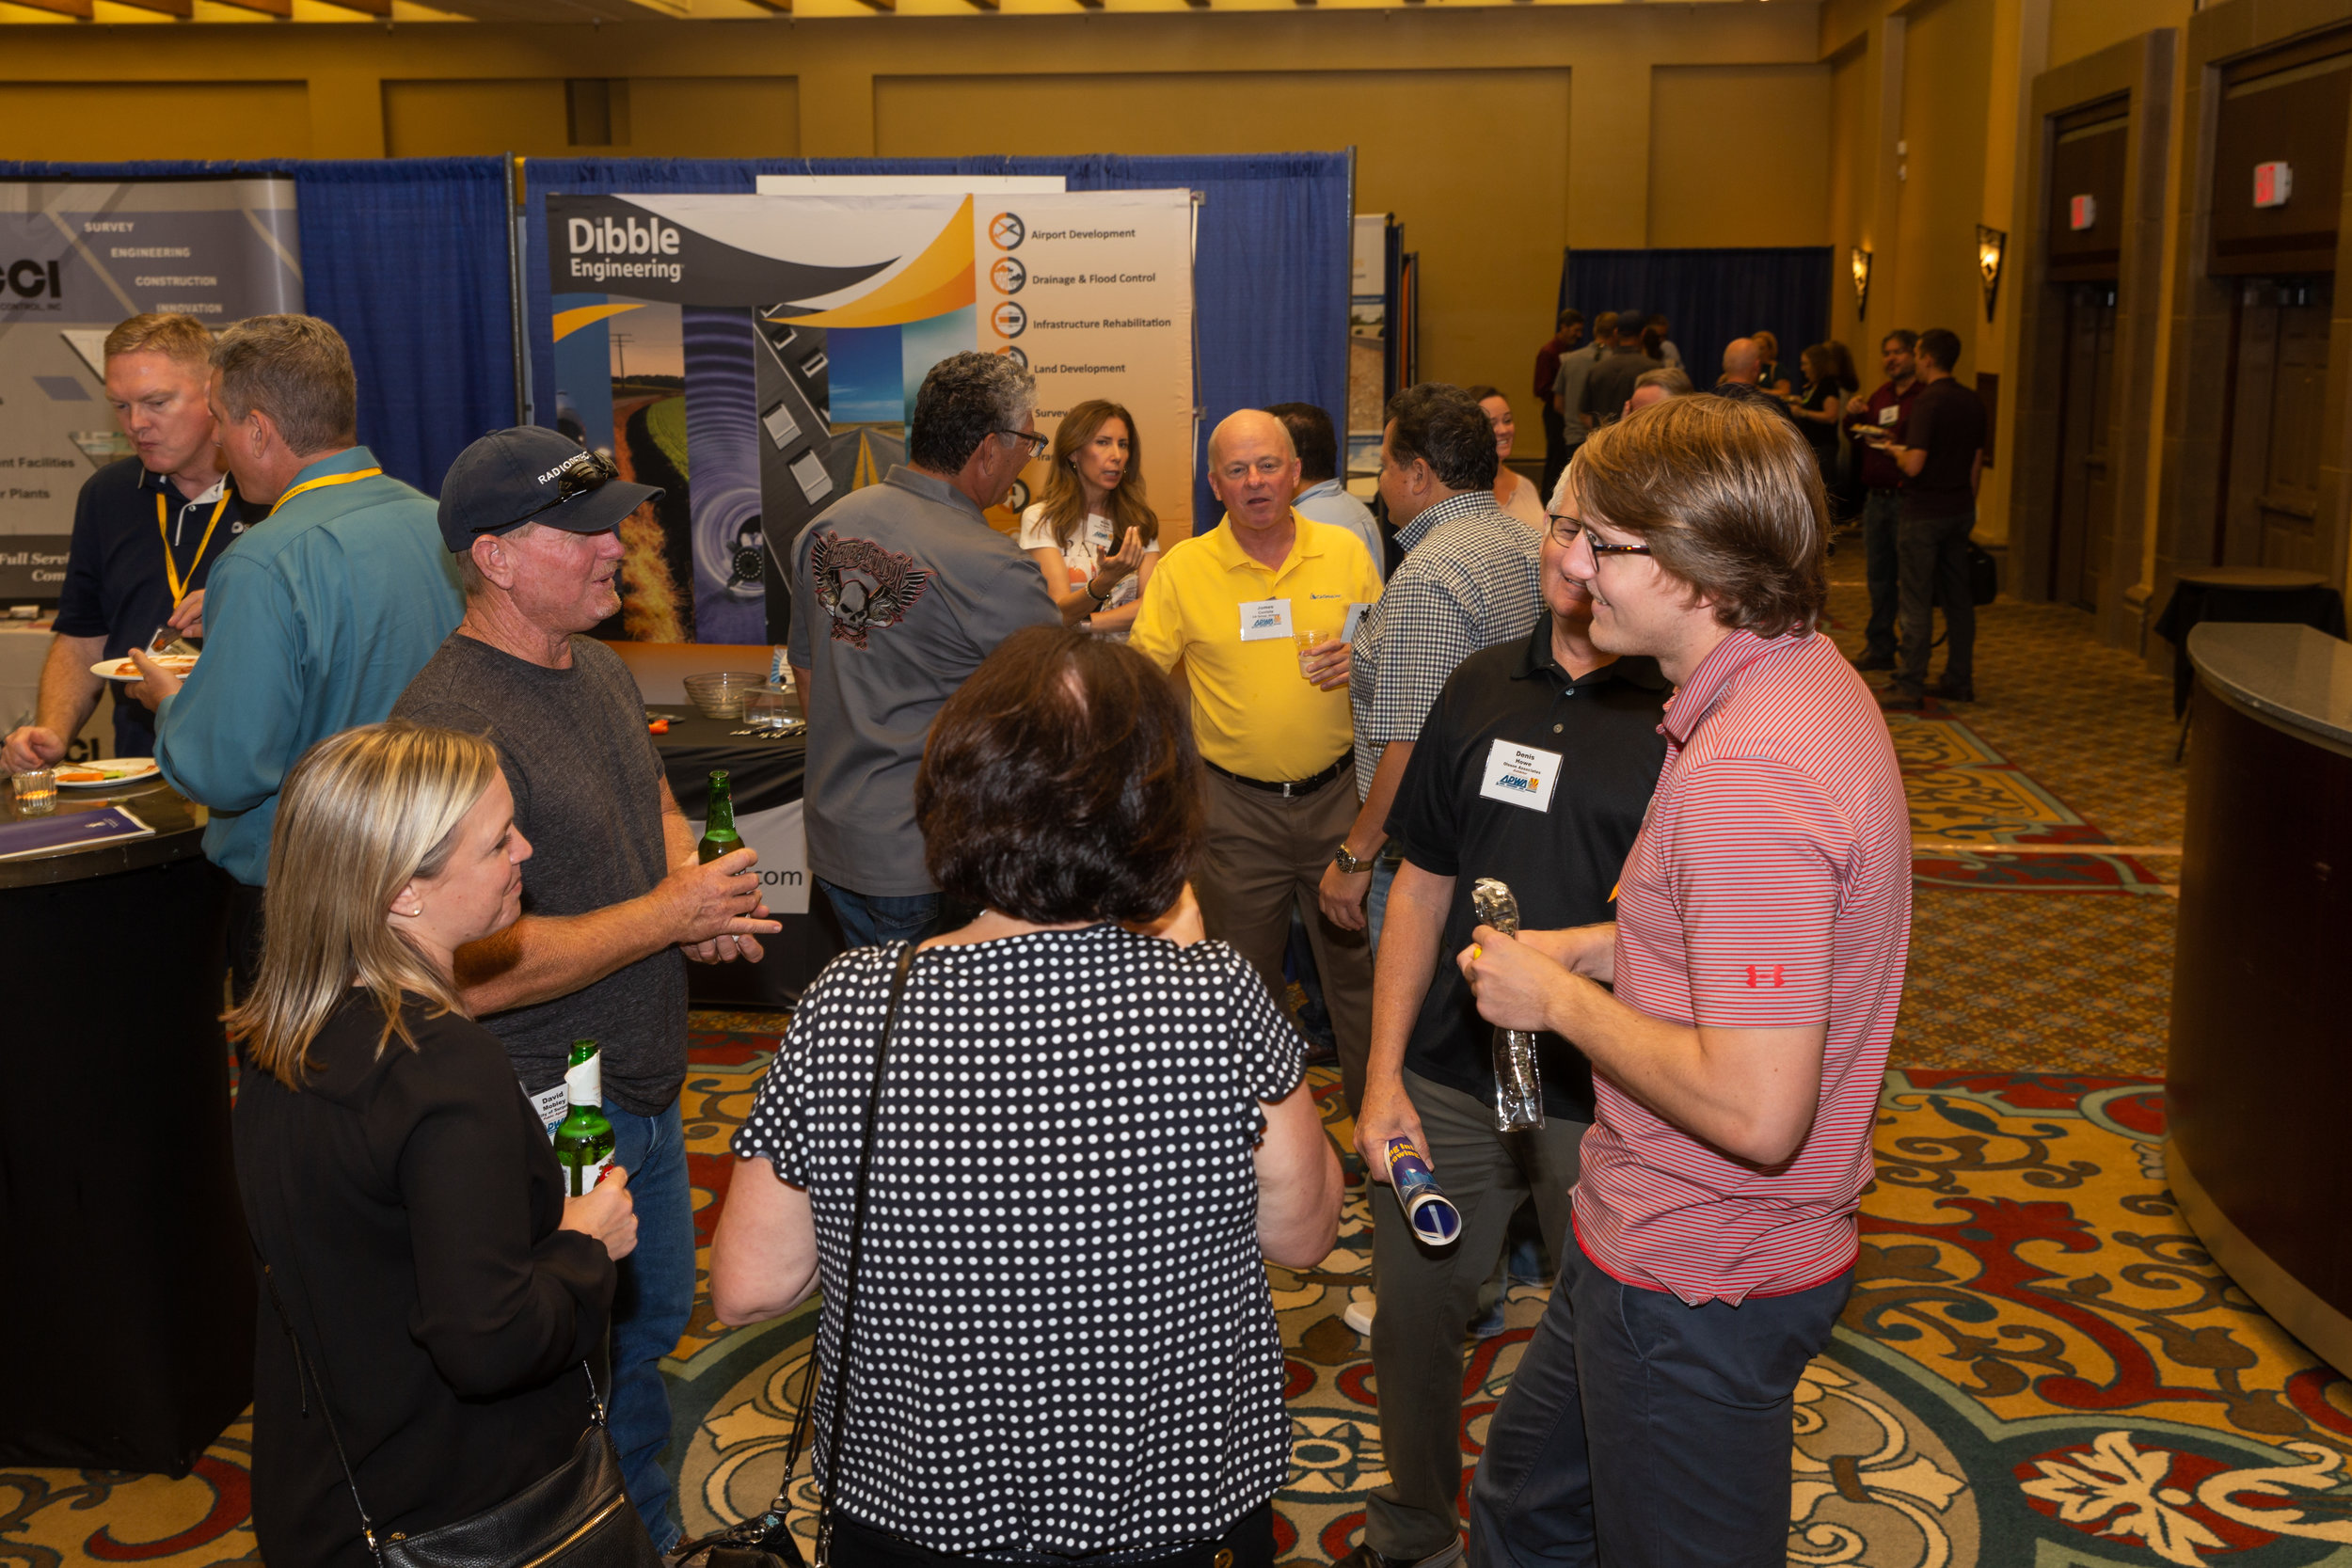 APWA_OpeningReception-20180801_9614.jpg